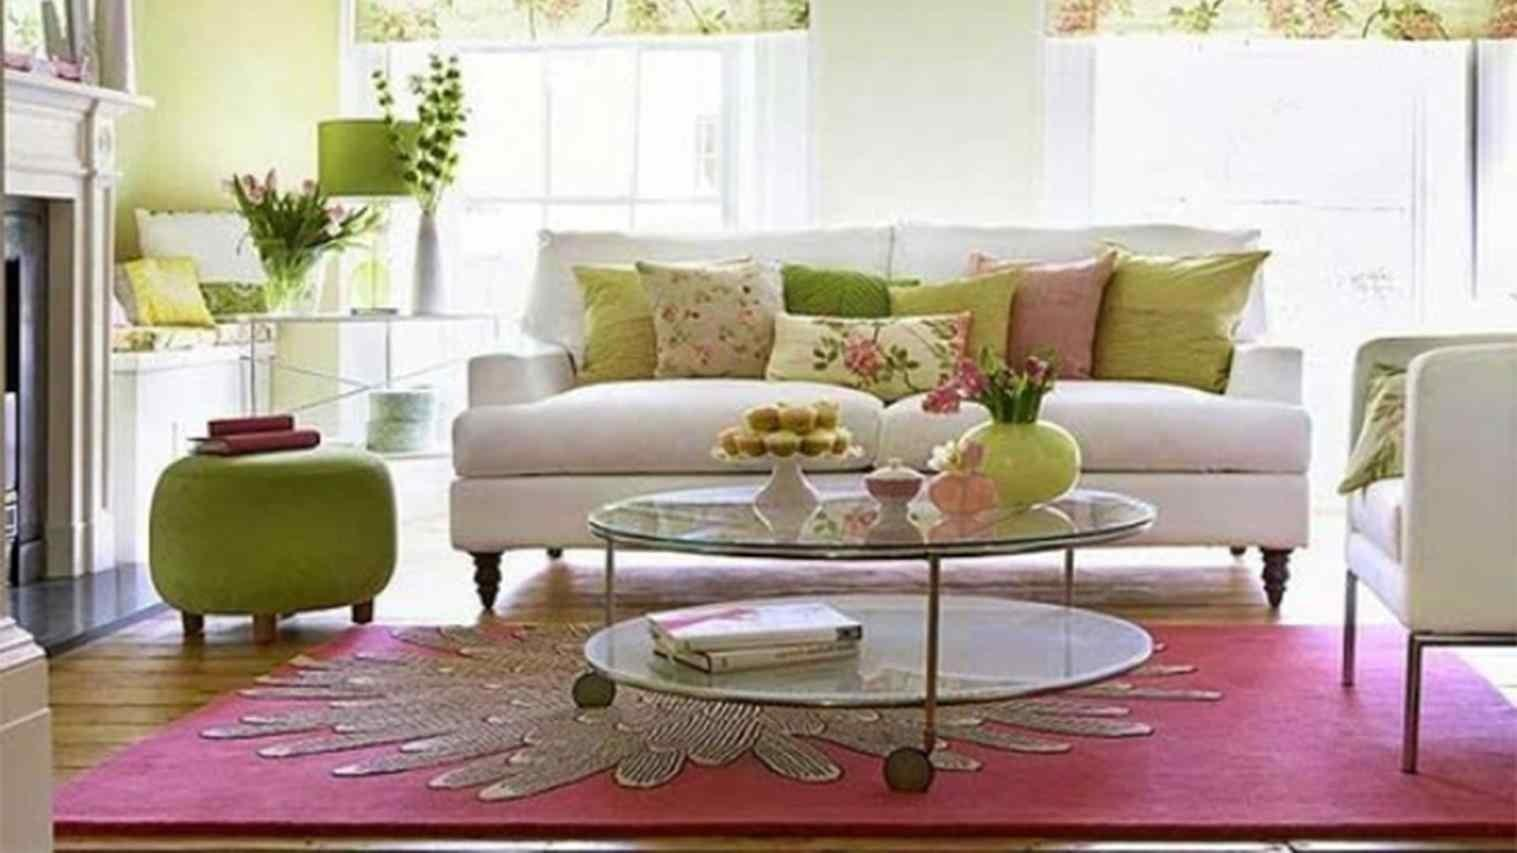 Decor Find Out Make Spring Decorating Ideas